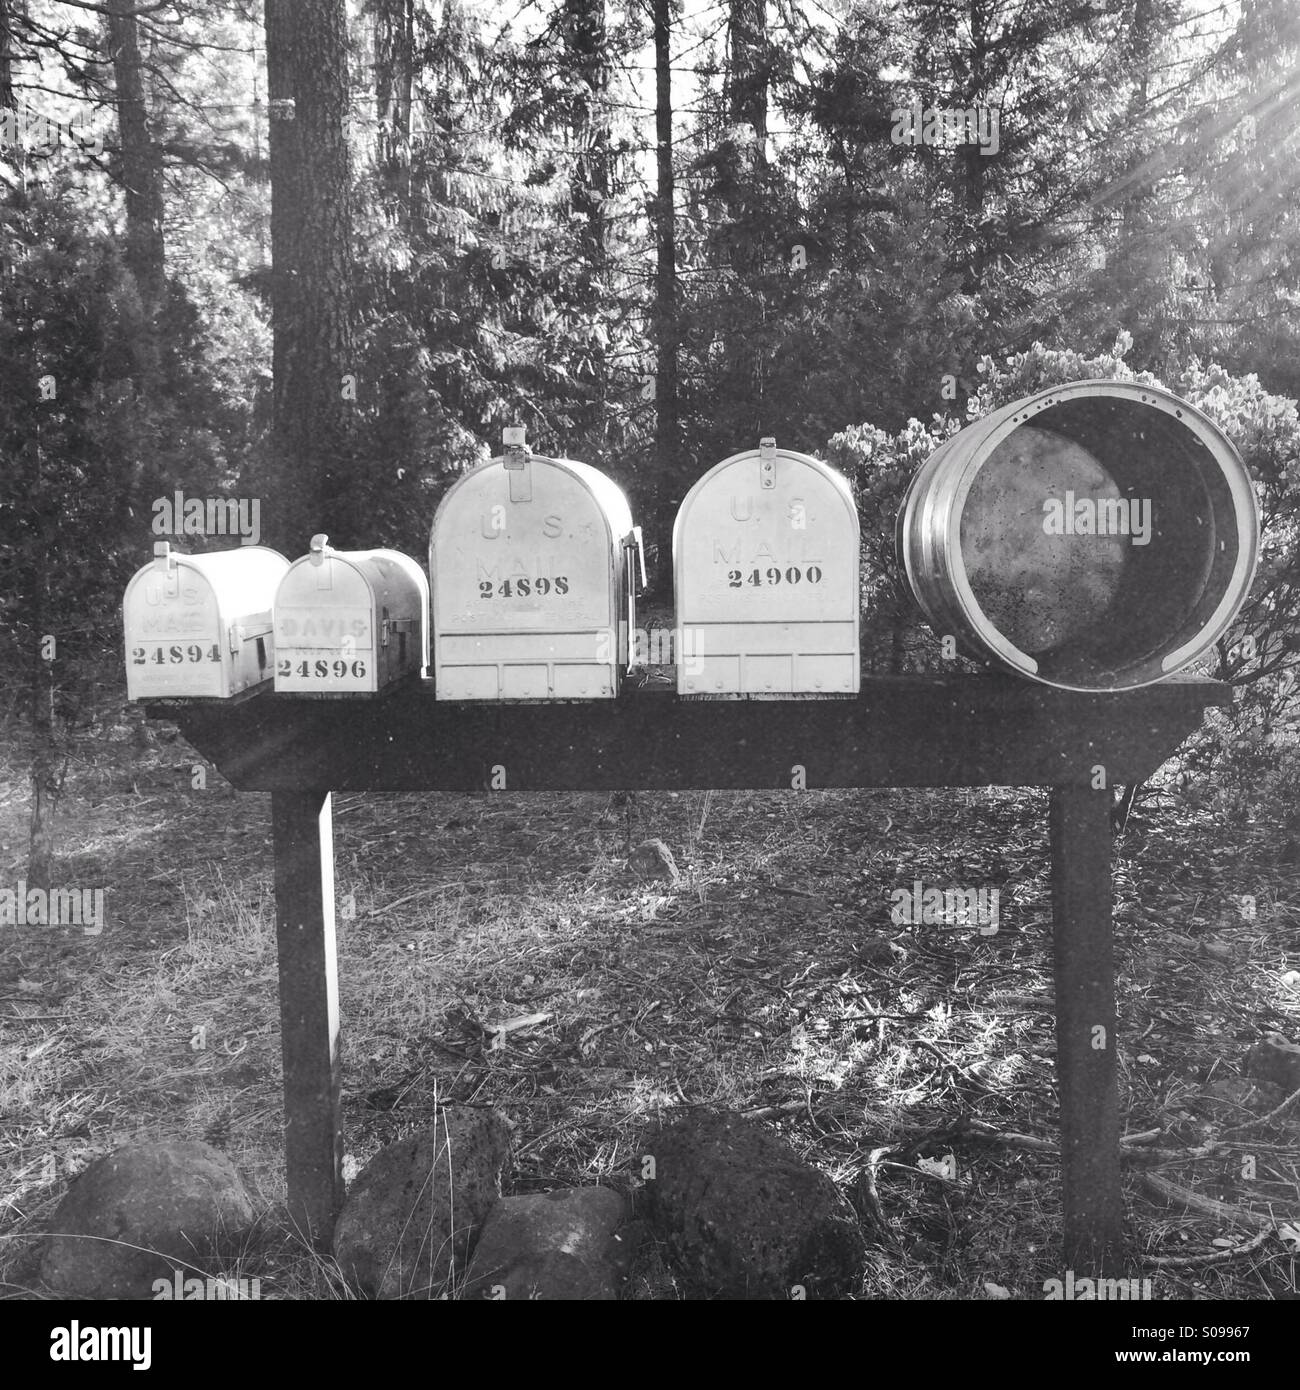 A line of differently sized US mailboxes in a forest setting - Stock Image